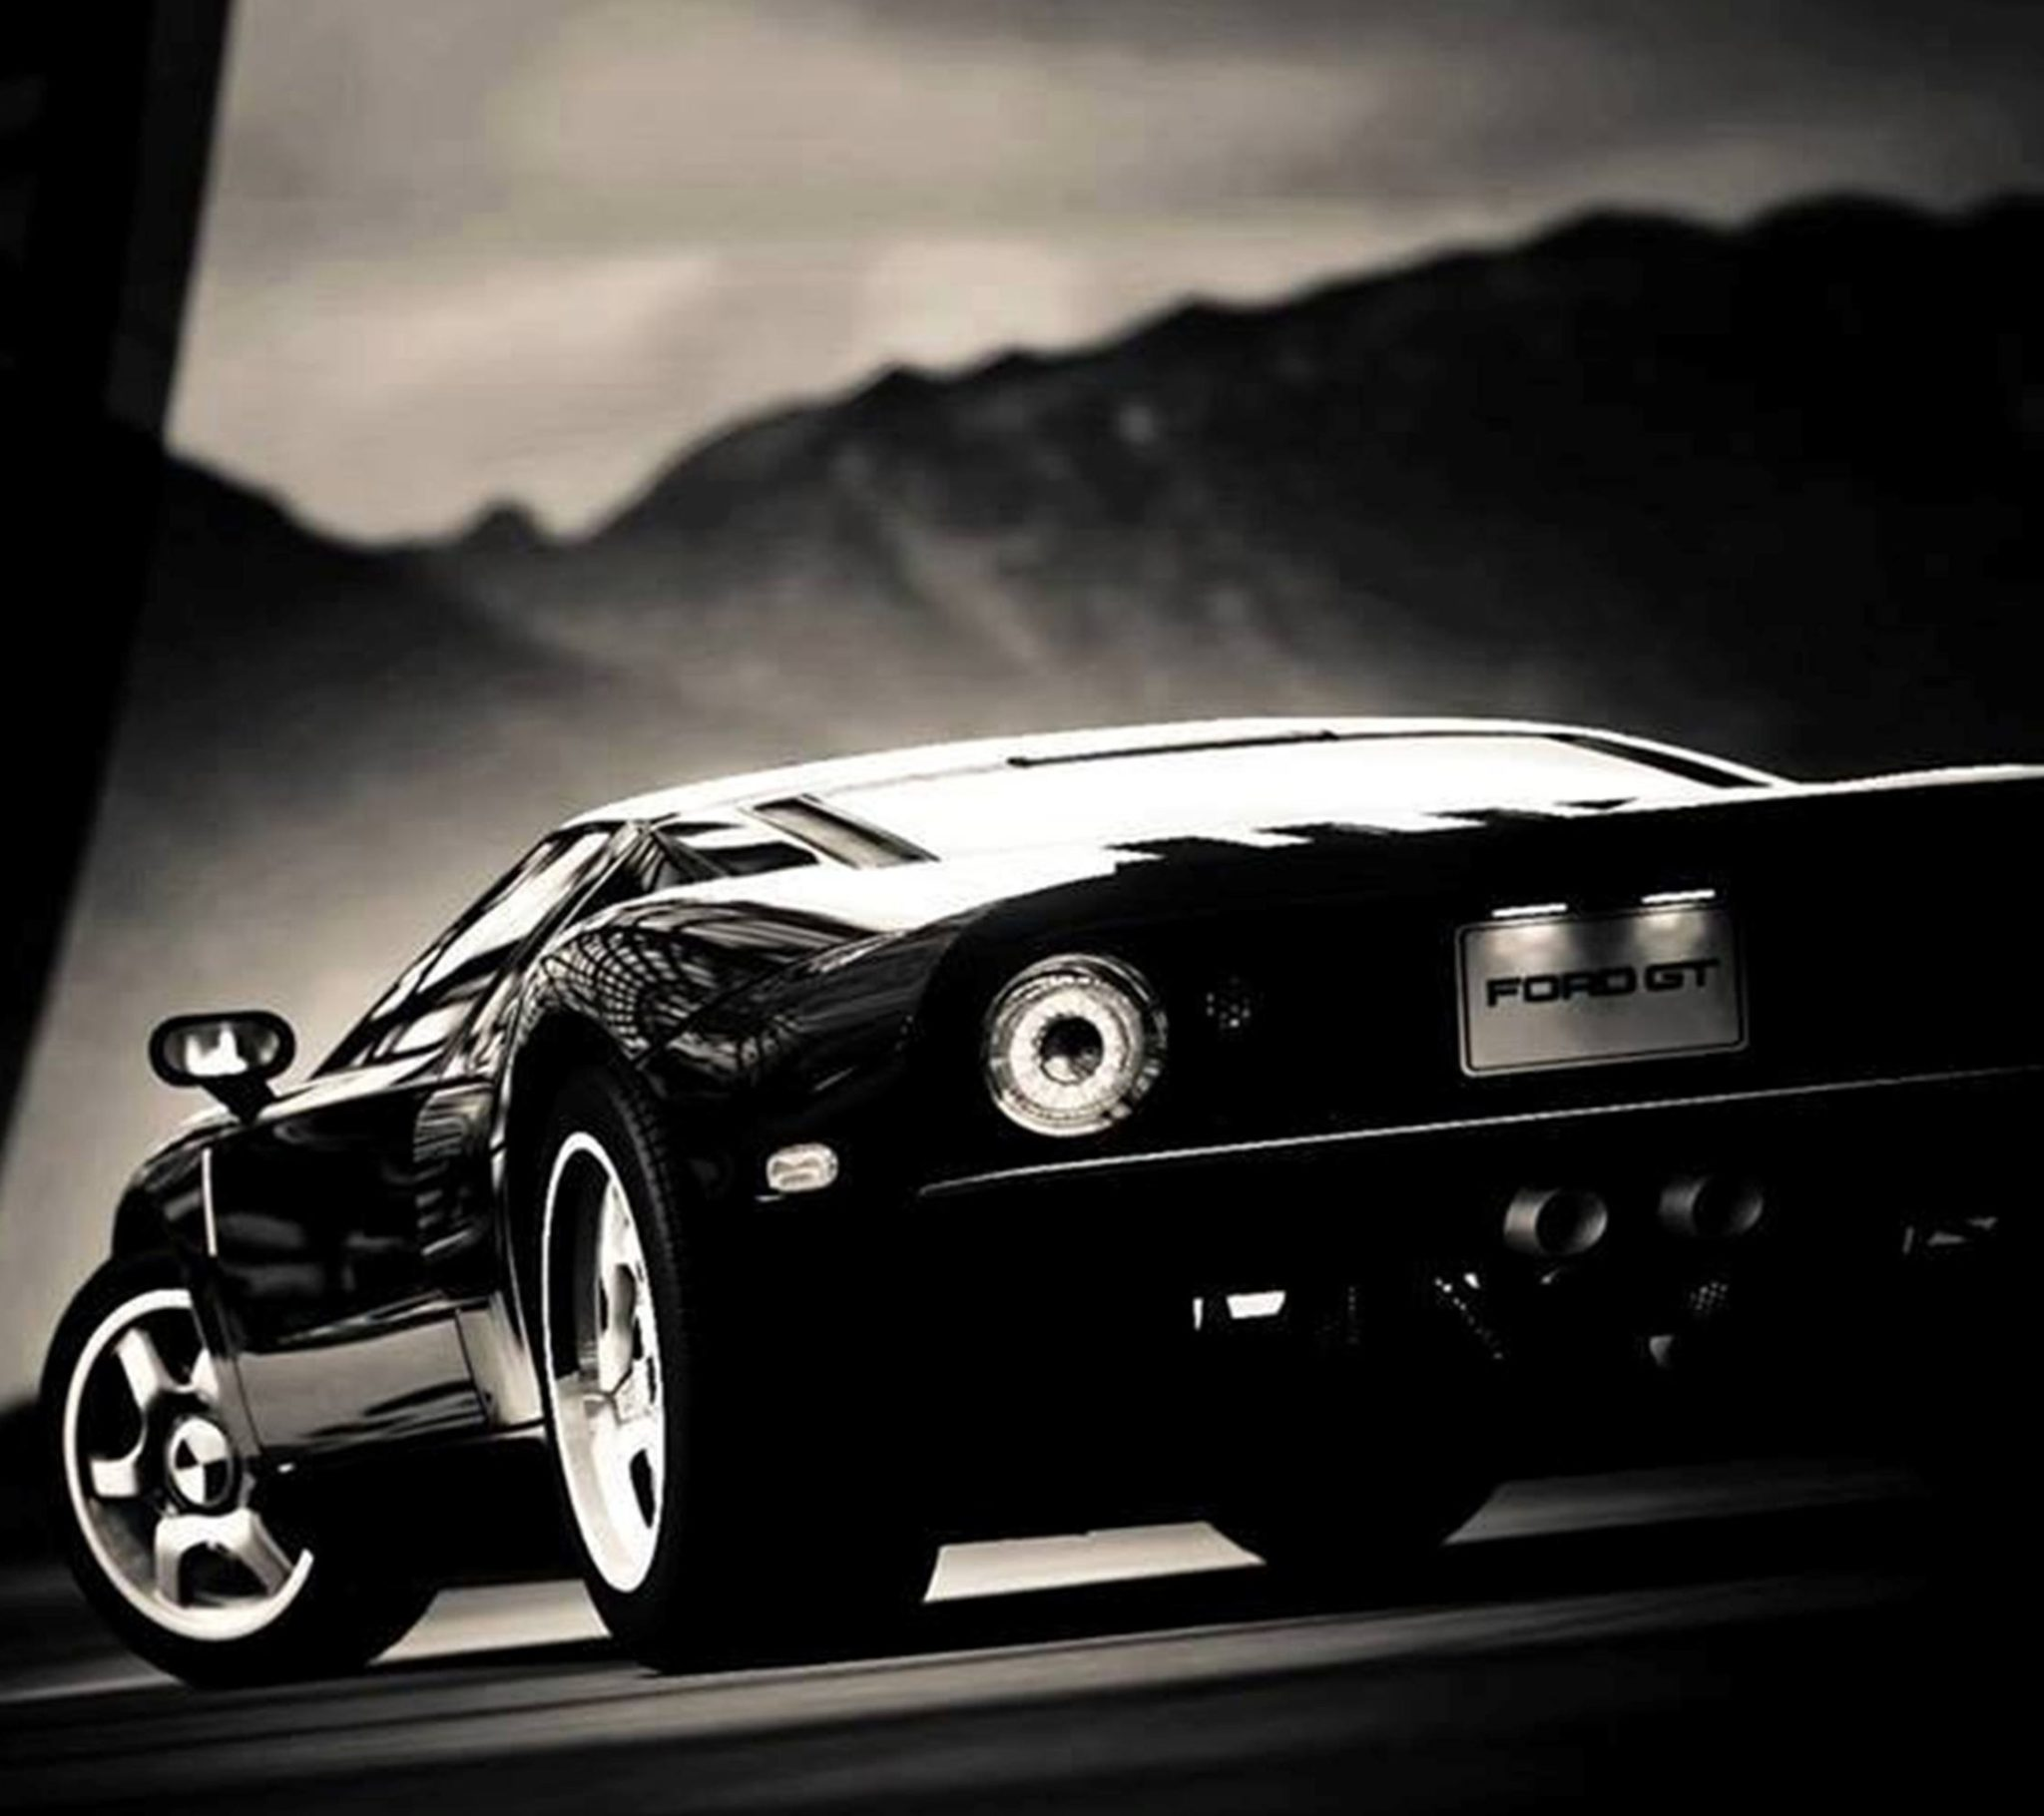 Ford_Gt-wallpaper-10047486